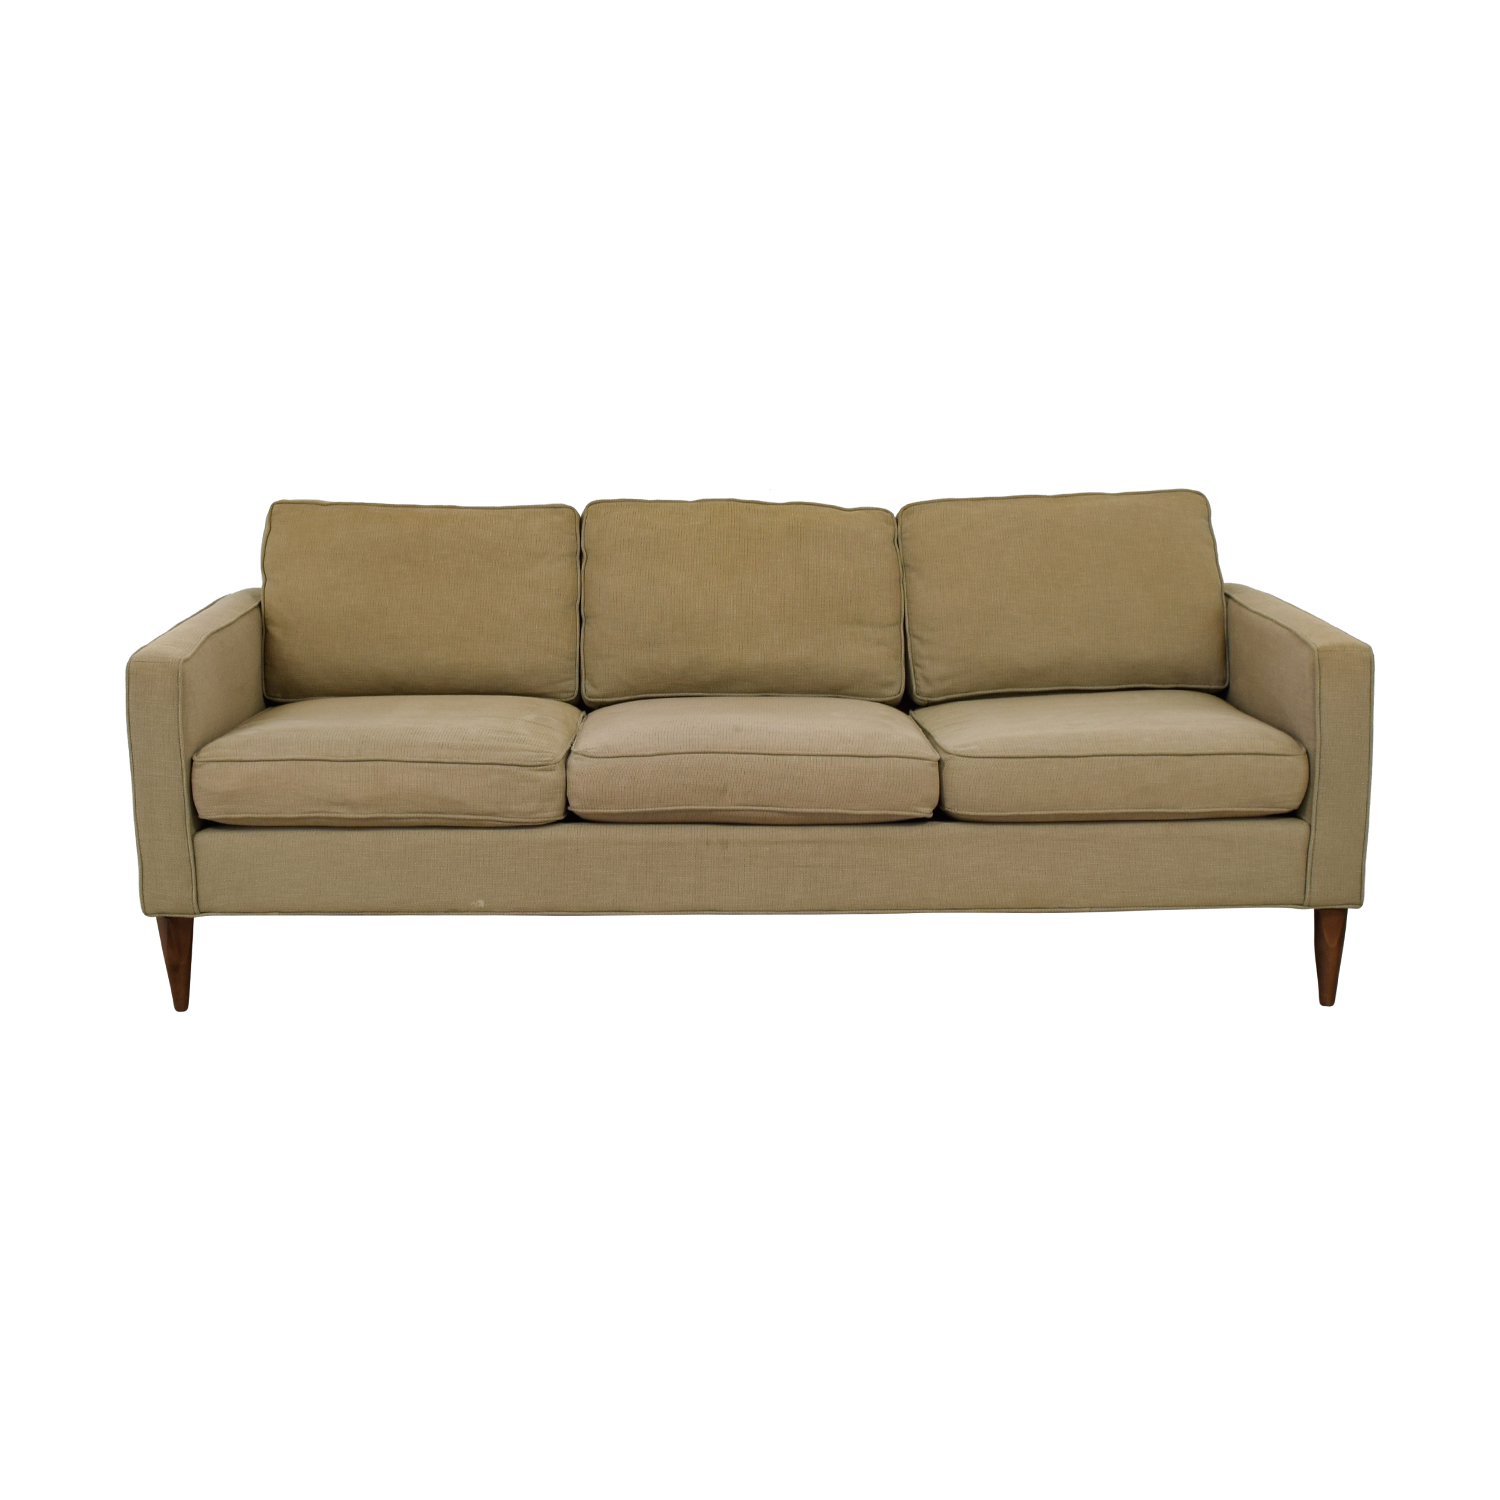 Room & Board Room & Board Beige Three-Cushion Sofa coupon